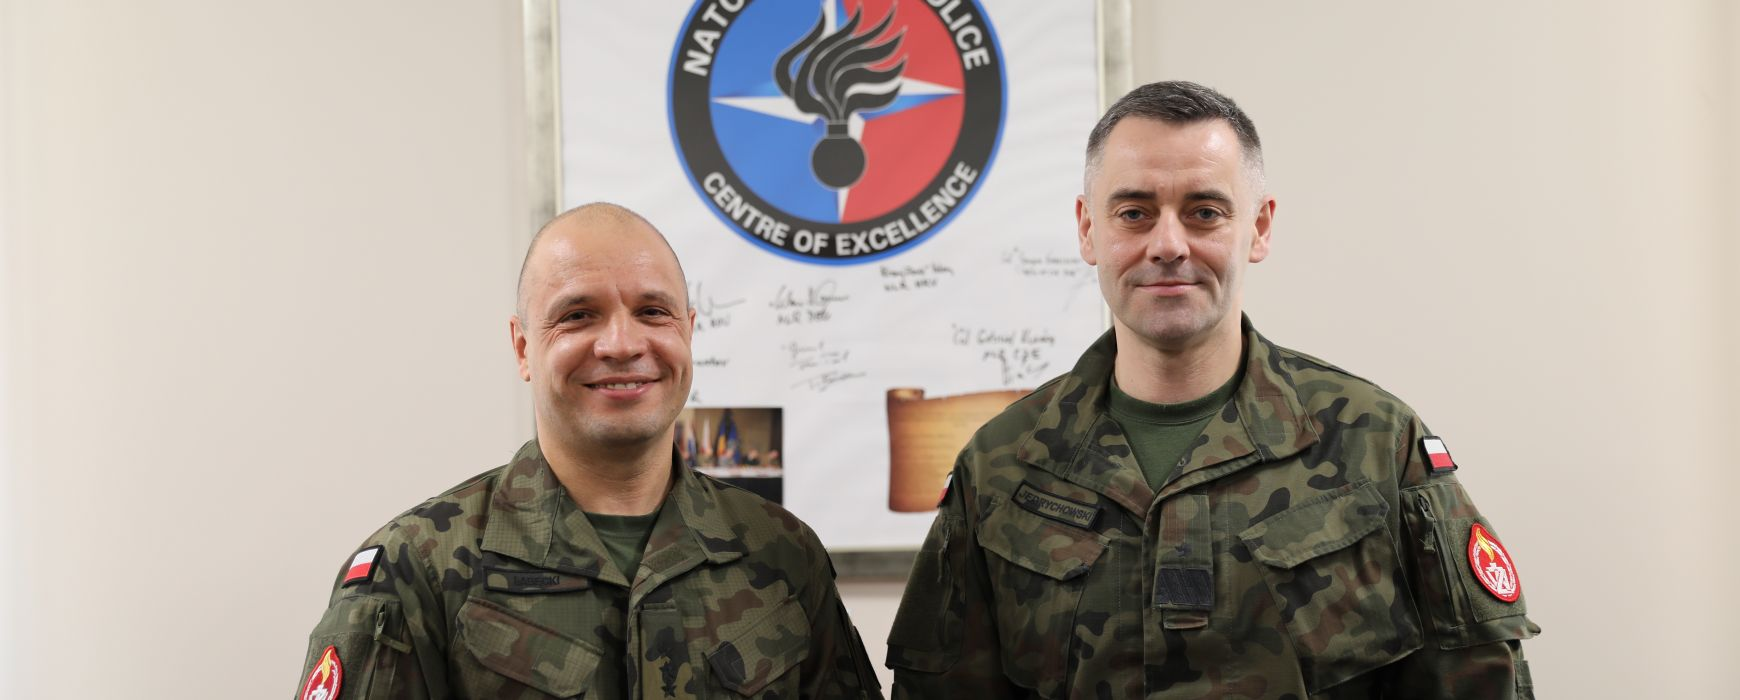 Visit of the Polish Military Gendarmerie Key Leaders to the NATO MP COE on the 27th FEB 2020